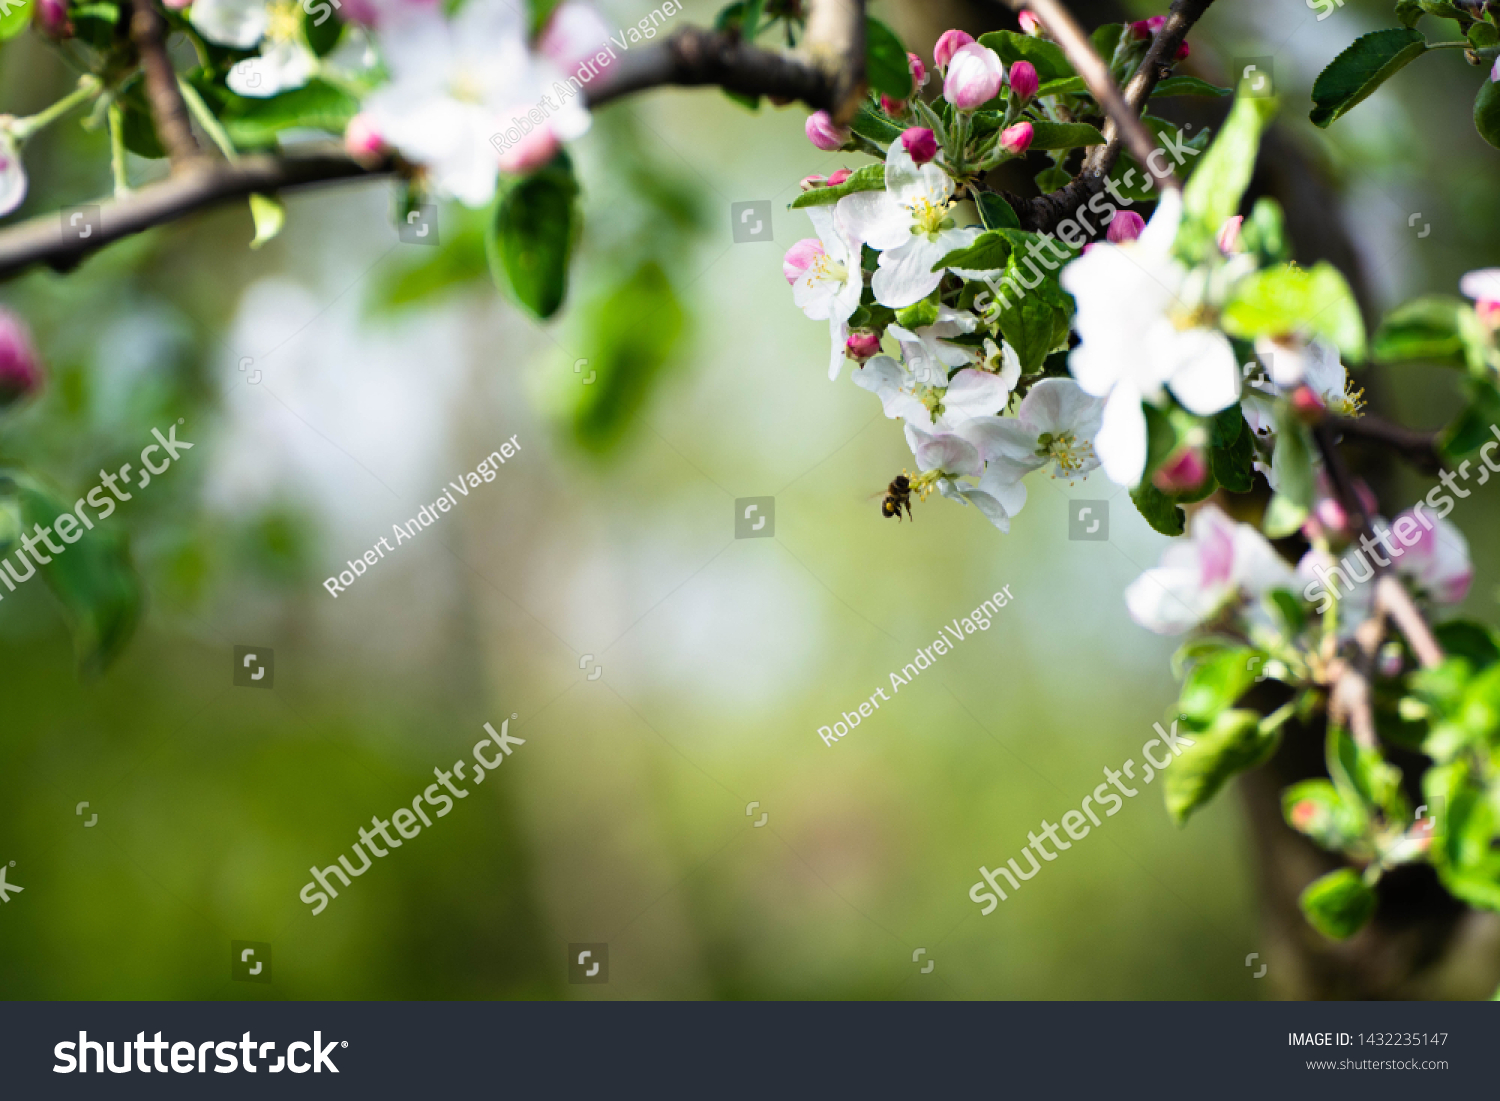 Beauty Nature Floral Desktop Background Blooming Stock Image